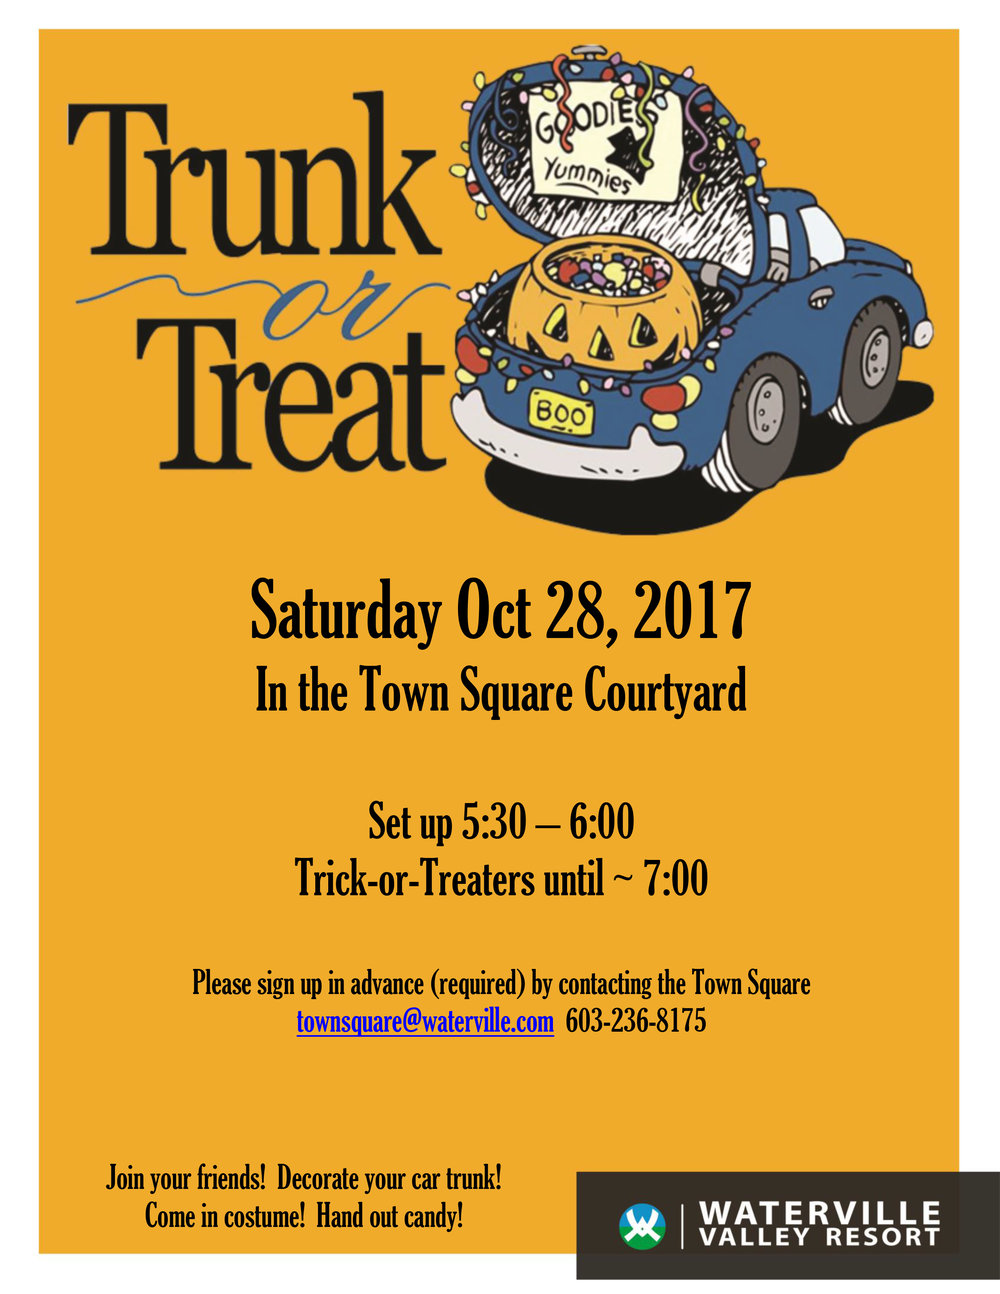 Trunk or Treat 2017 9.jpg